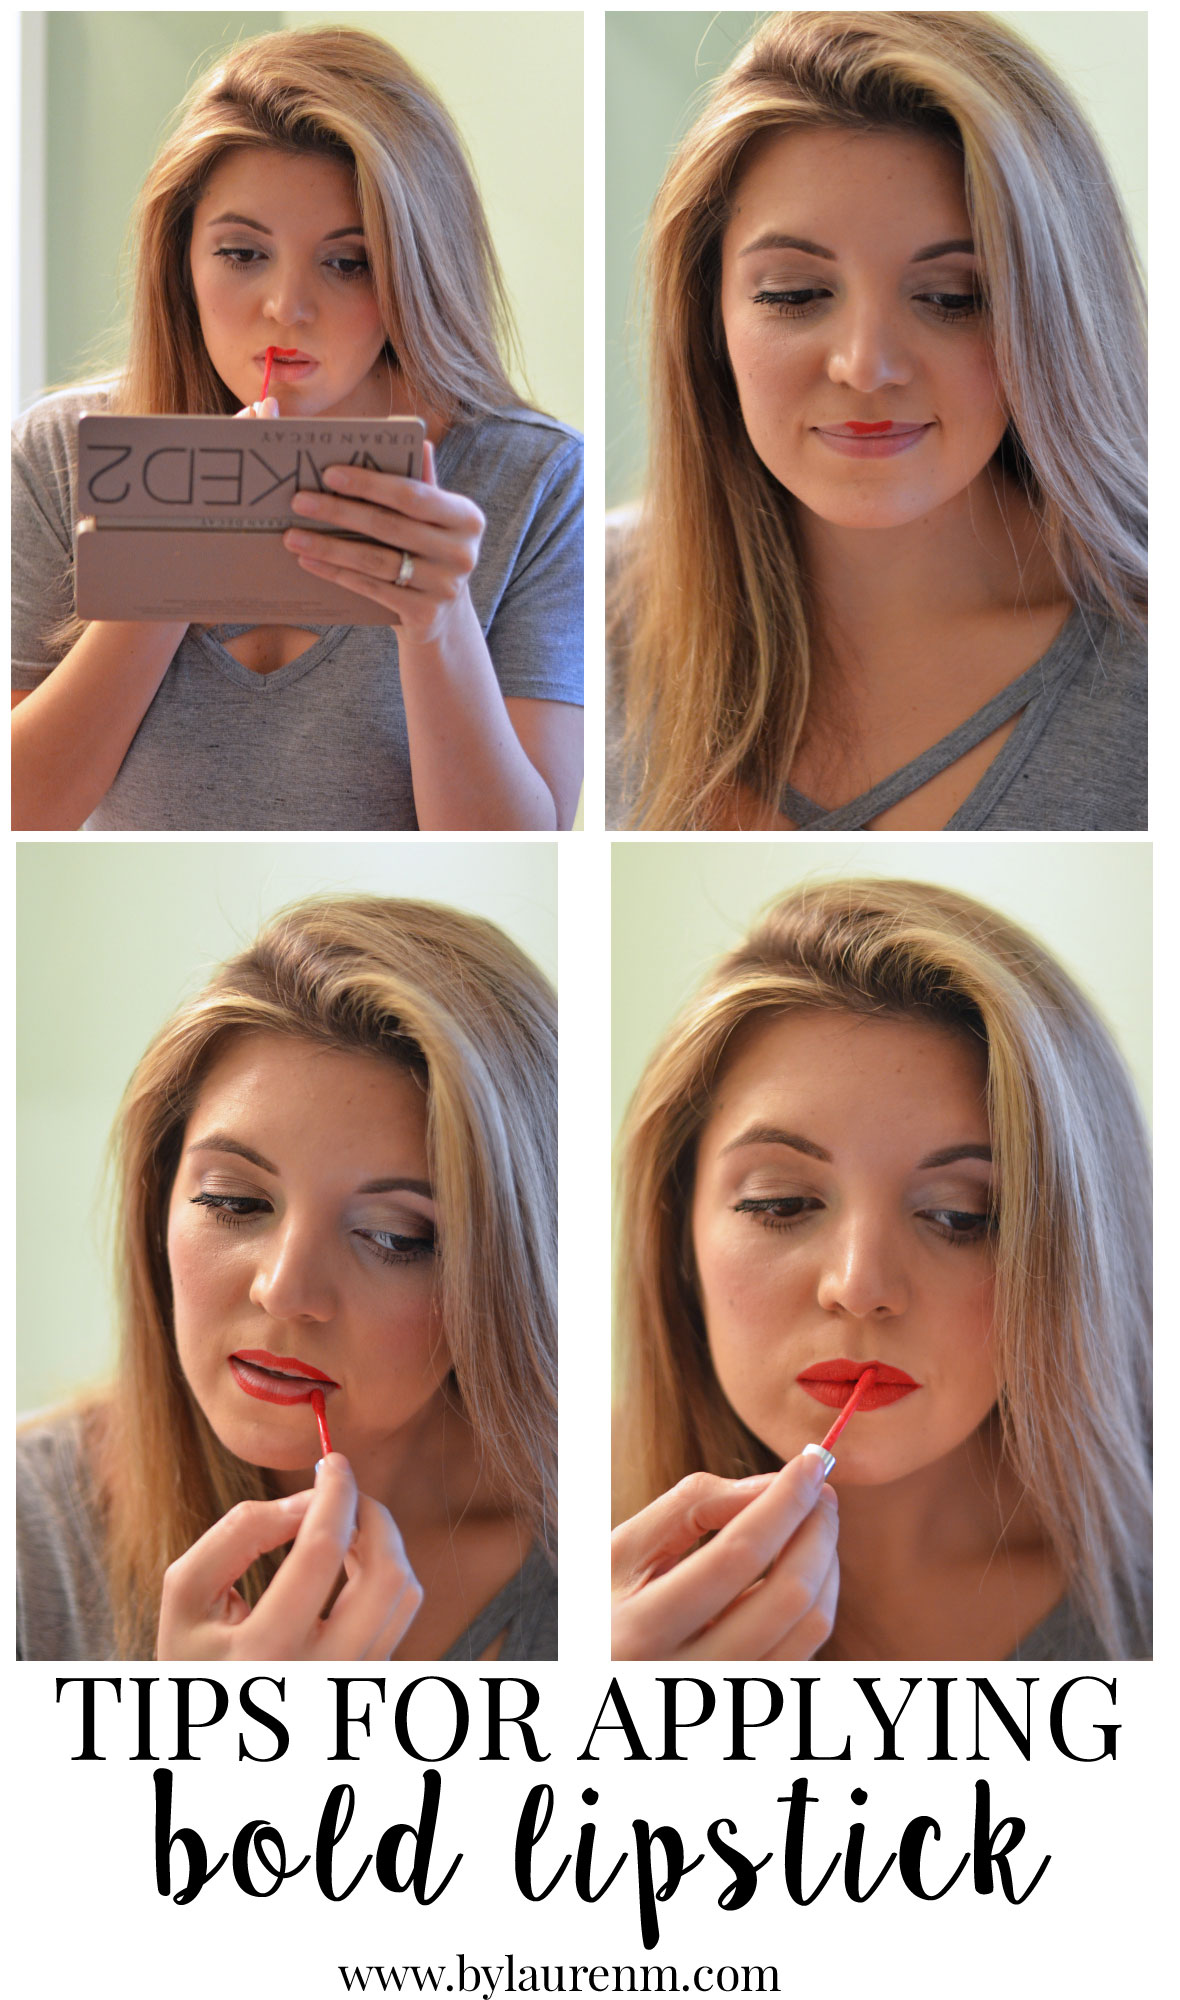 tips to apply bold lipstick | www.bylaurenm.com